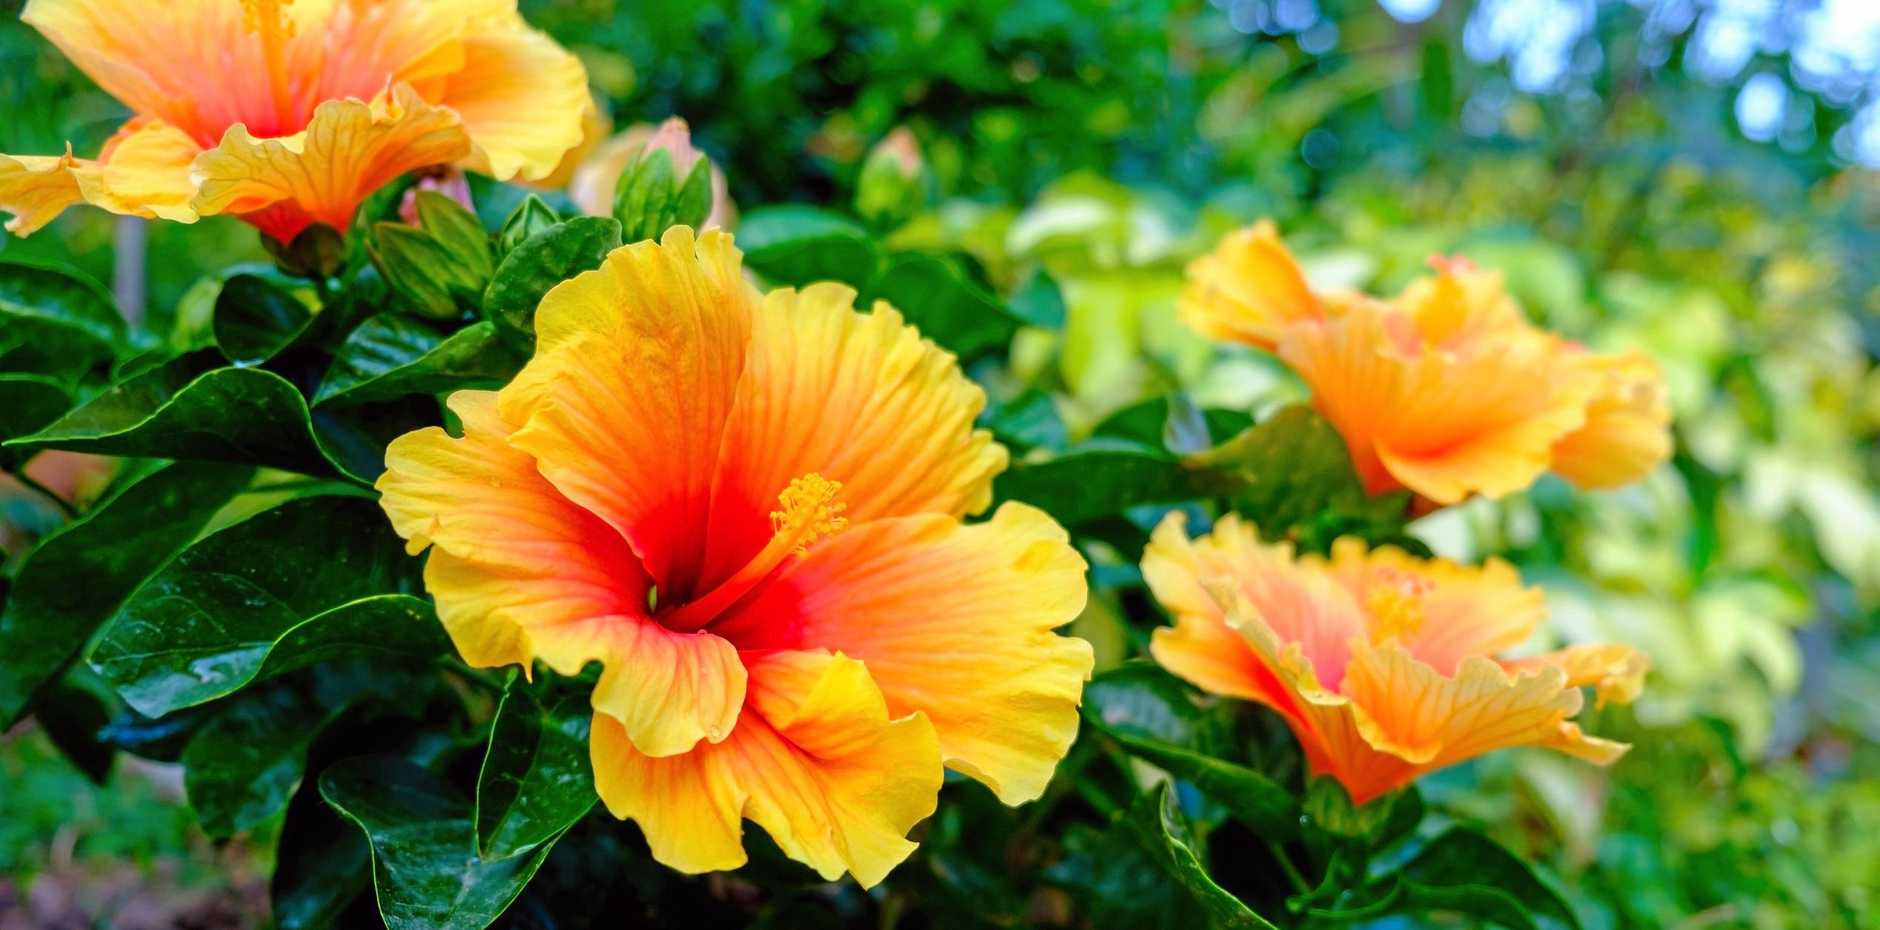 Turn Heads With A Display Of This Stunning Flower Sunshine Coast Daily